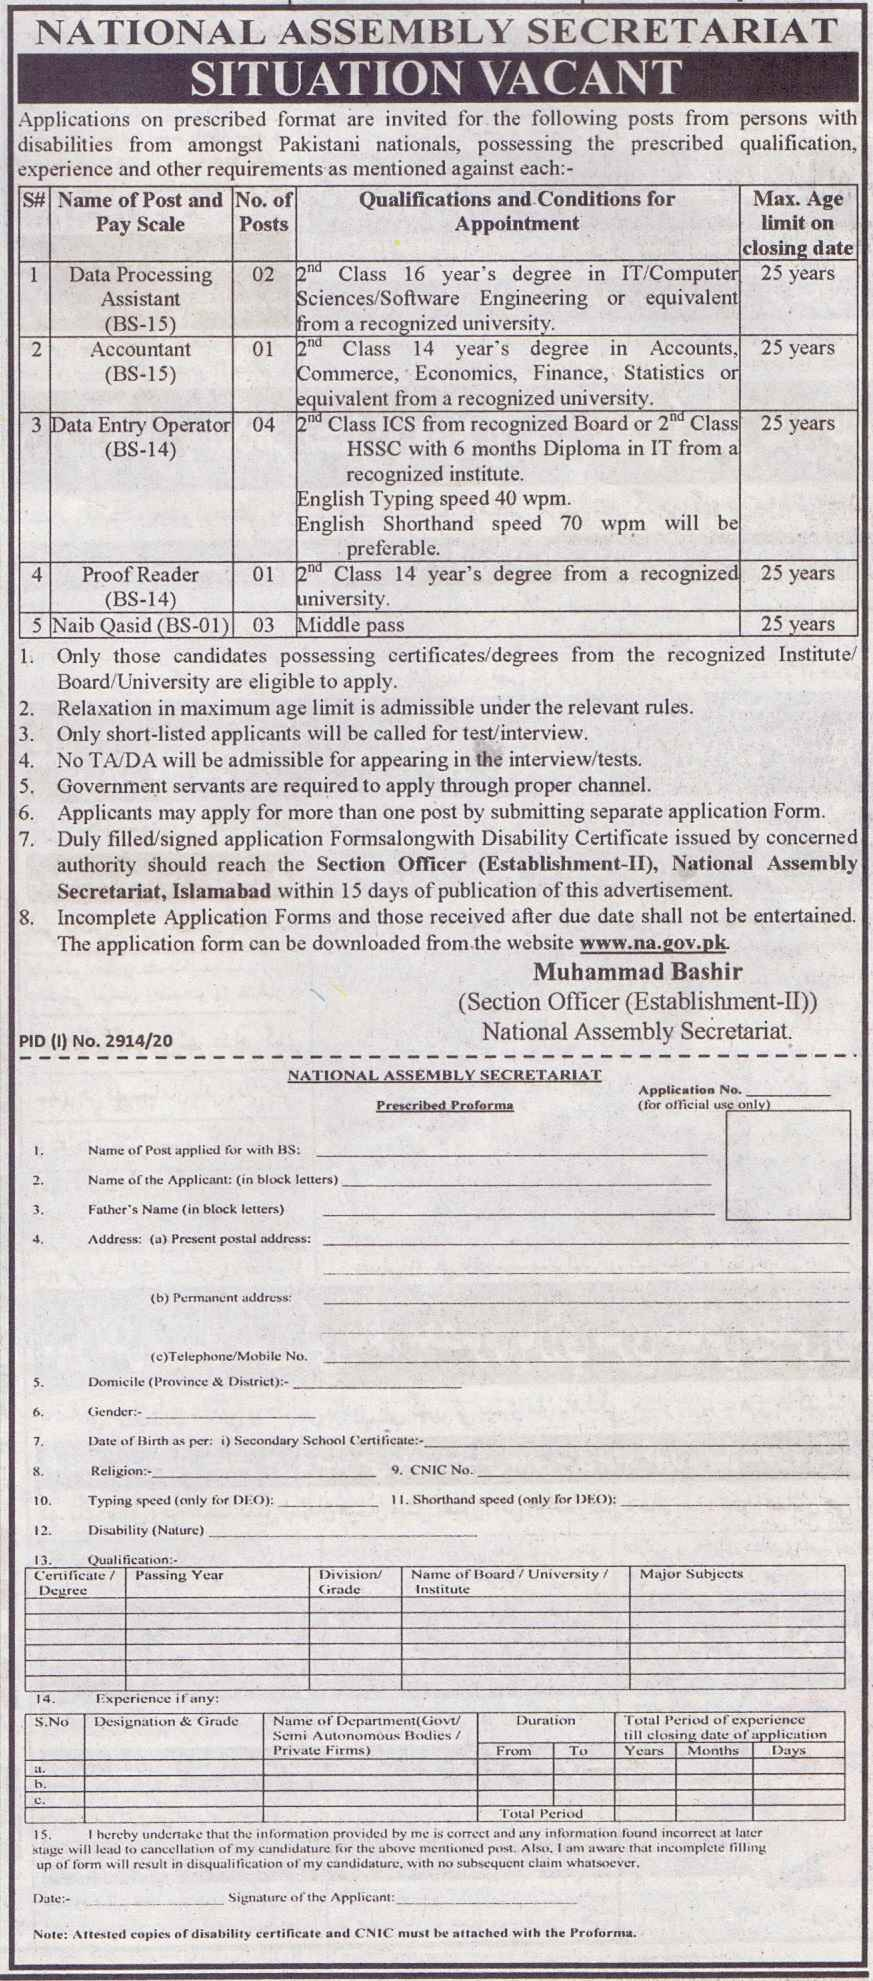 National Assembly Secretariat Jobs 2020 for Data Processing Assistant, Accountant, Data Entry Operator, Proof Reader and more